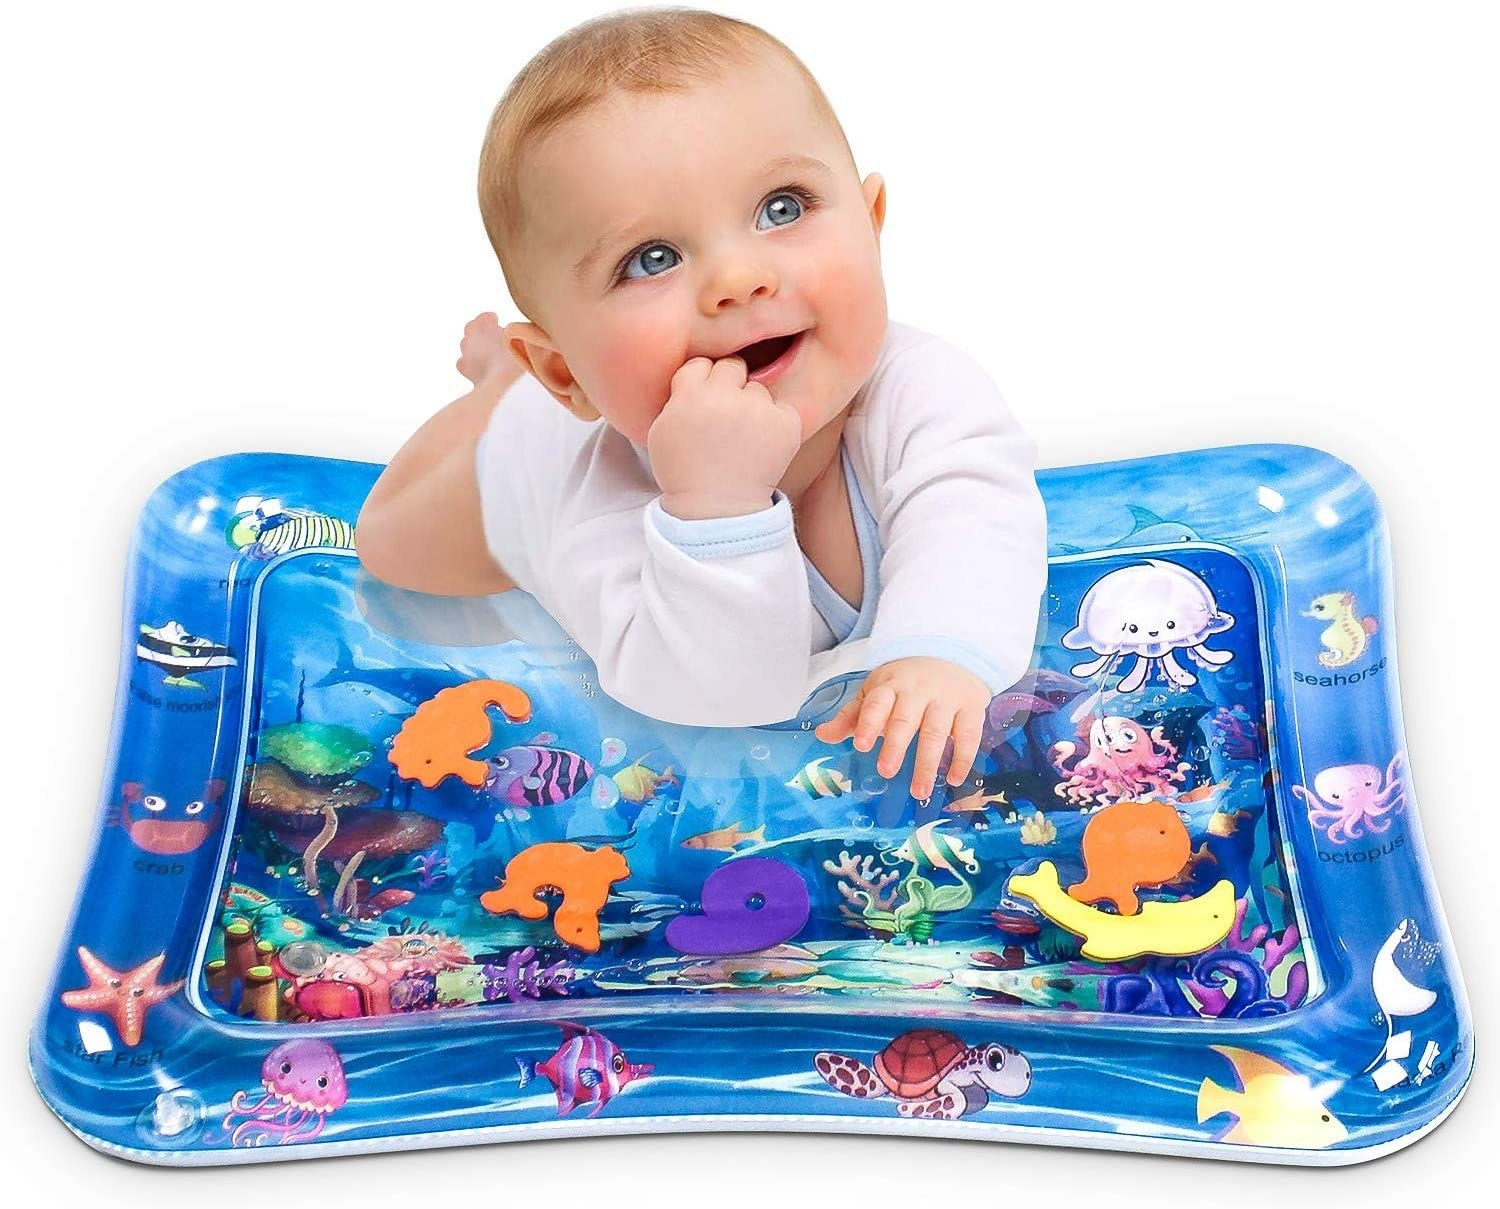 Baby on the inflated mat with a sea-theme to it